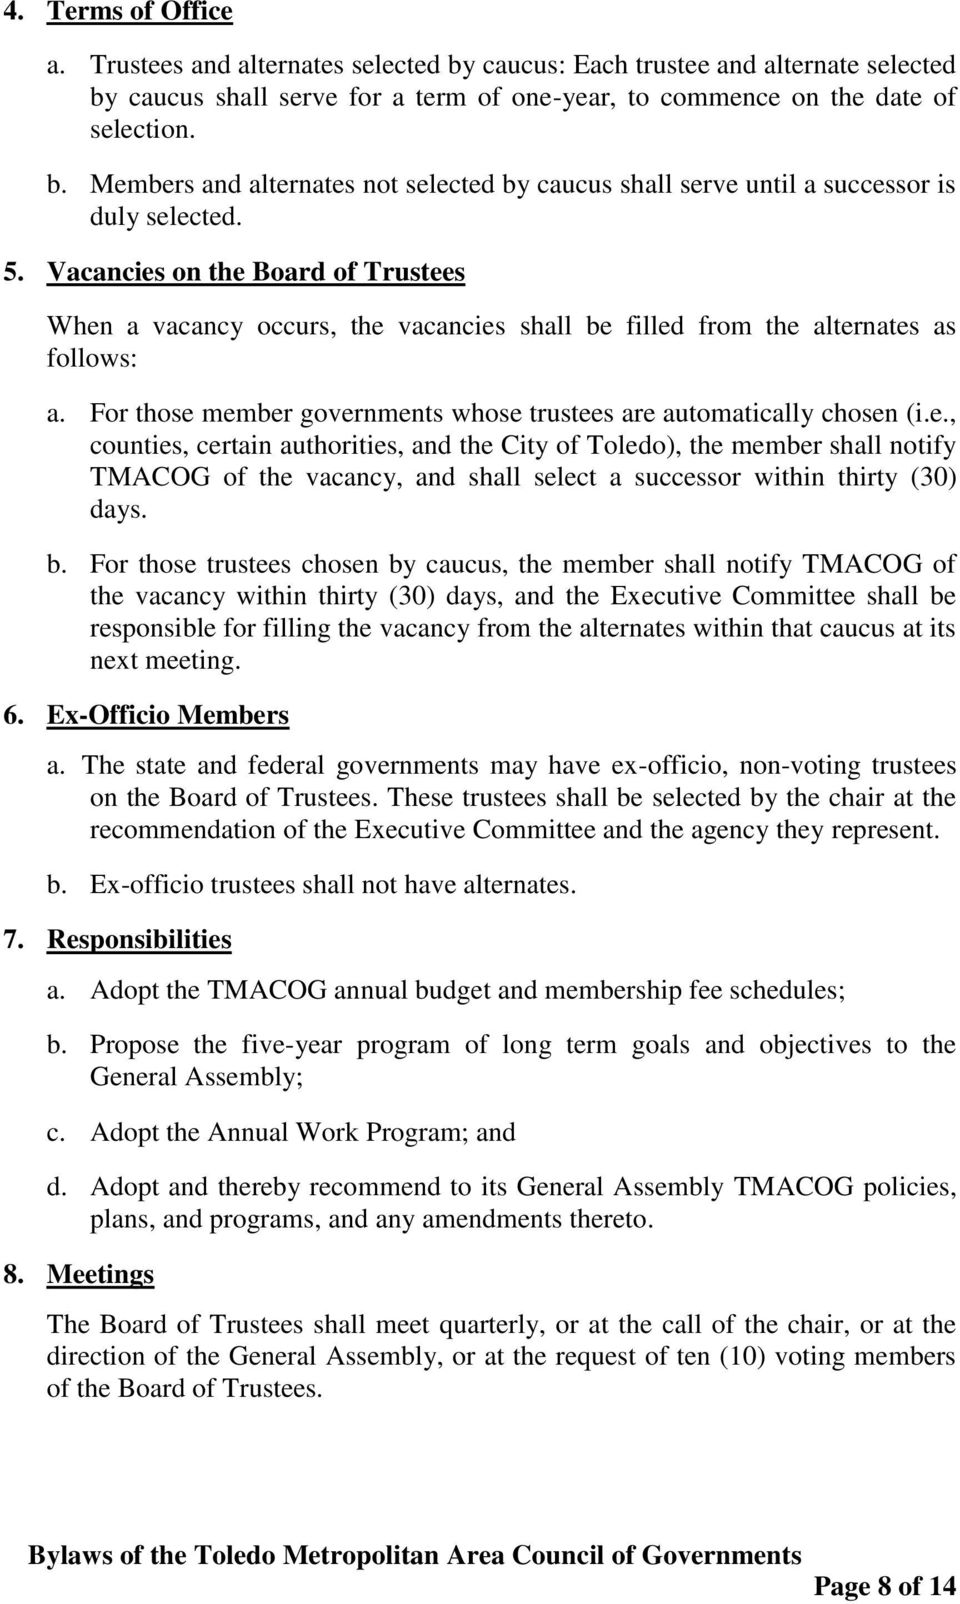 b. For those trustees chosen by caucus, the member shall notify TMACOG of the vacancy within thirty (30) days, and the Executive Committee shall be responsible for filling the vacancy from the